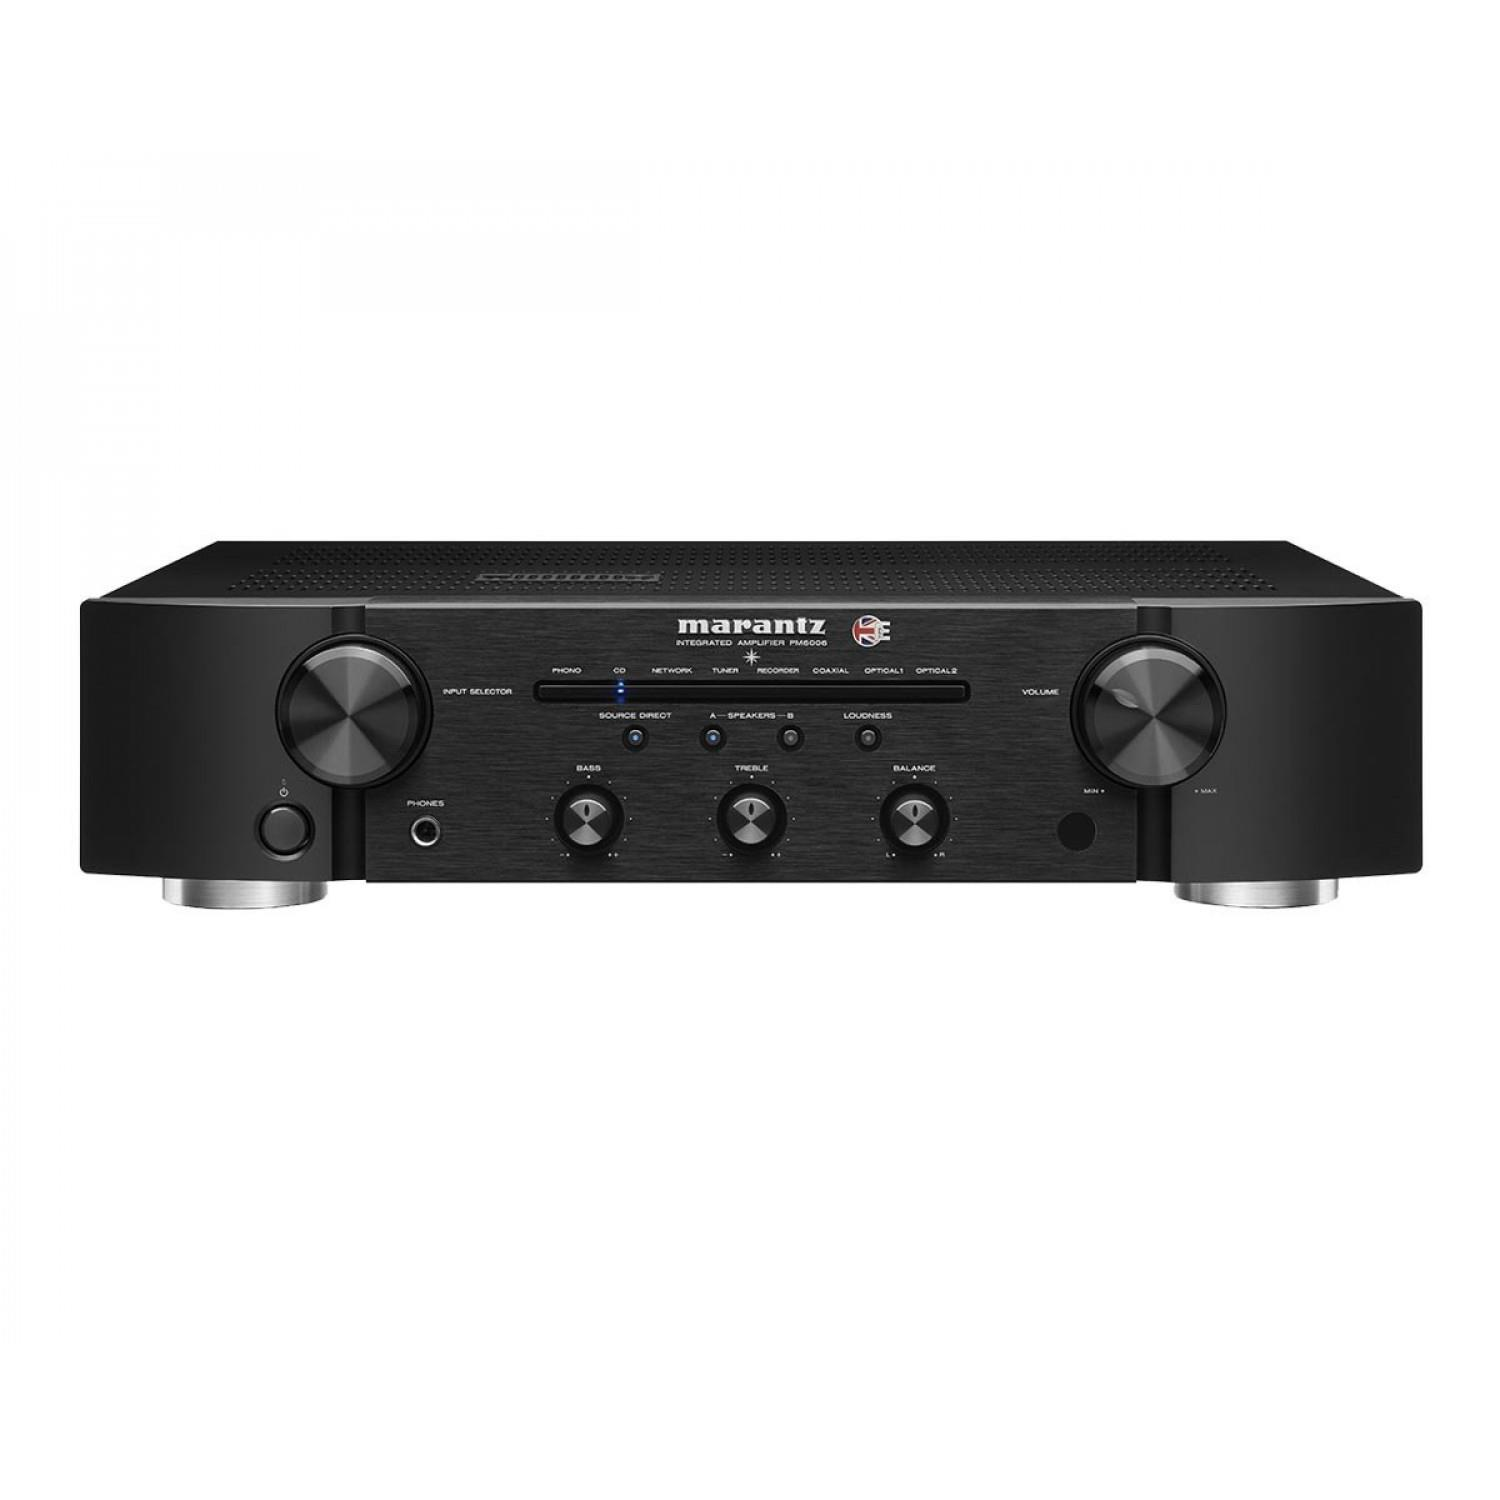 Sevenoaks Sound And Vision Marantz Pm6006 Uk Edition Amplifier Dac 45w Power Include Tone Control